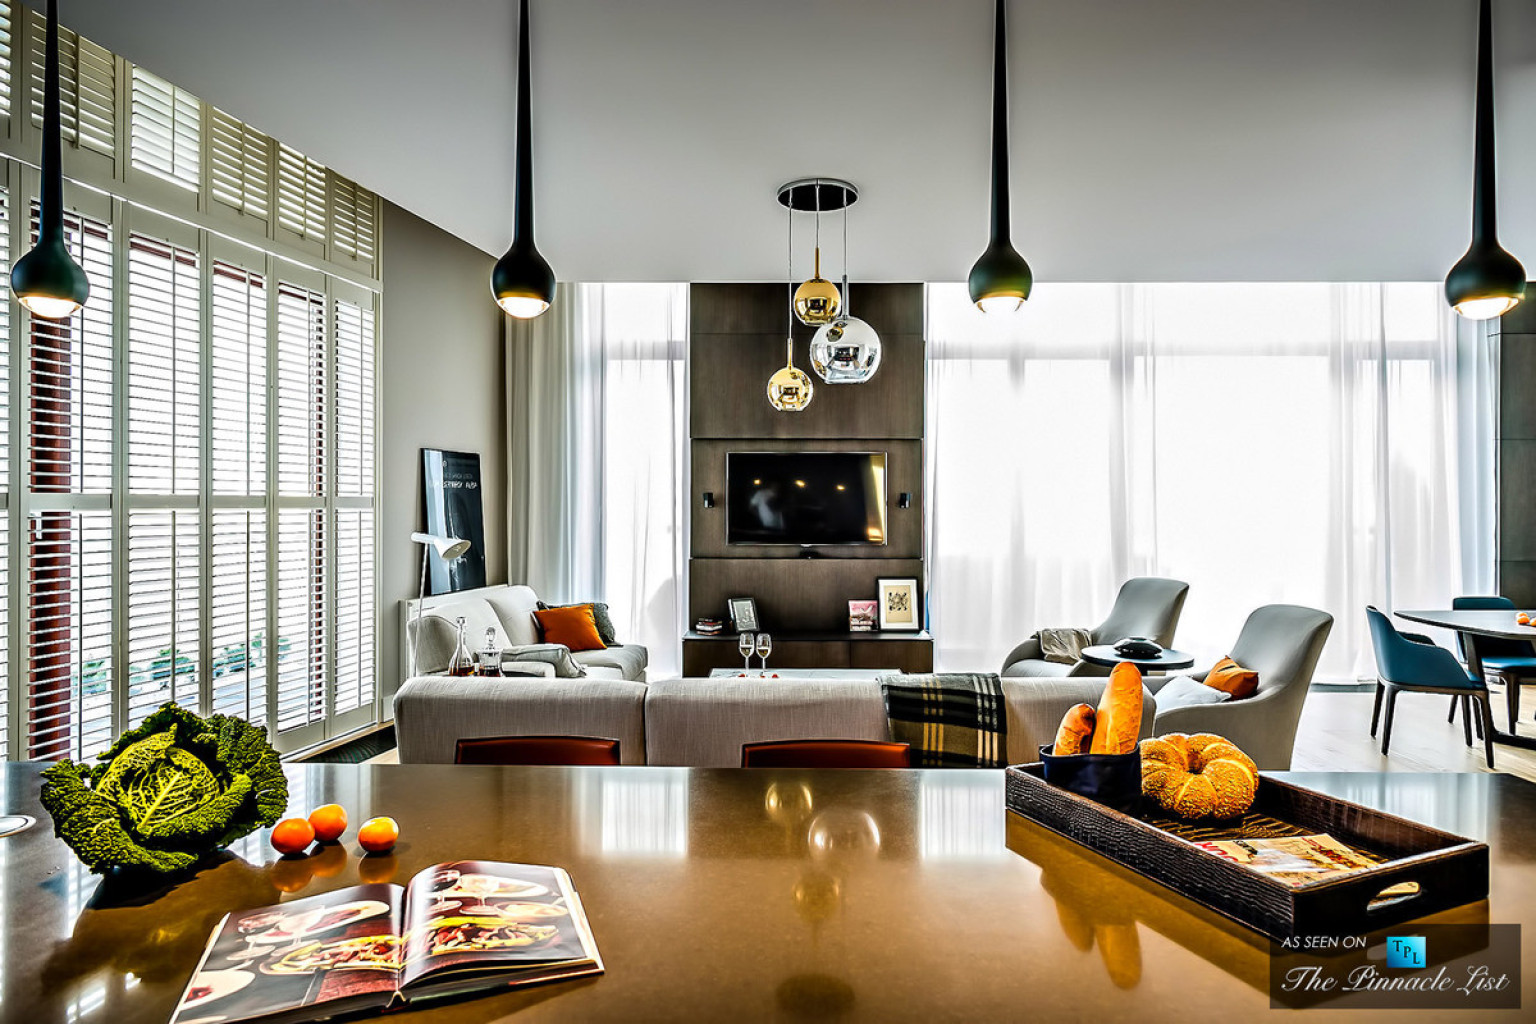 Nowe Powiśle Penthouse In Warsaw Poland Has The Most